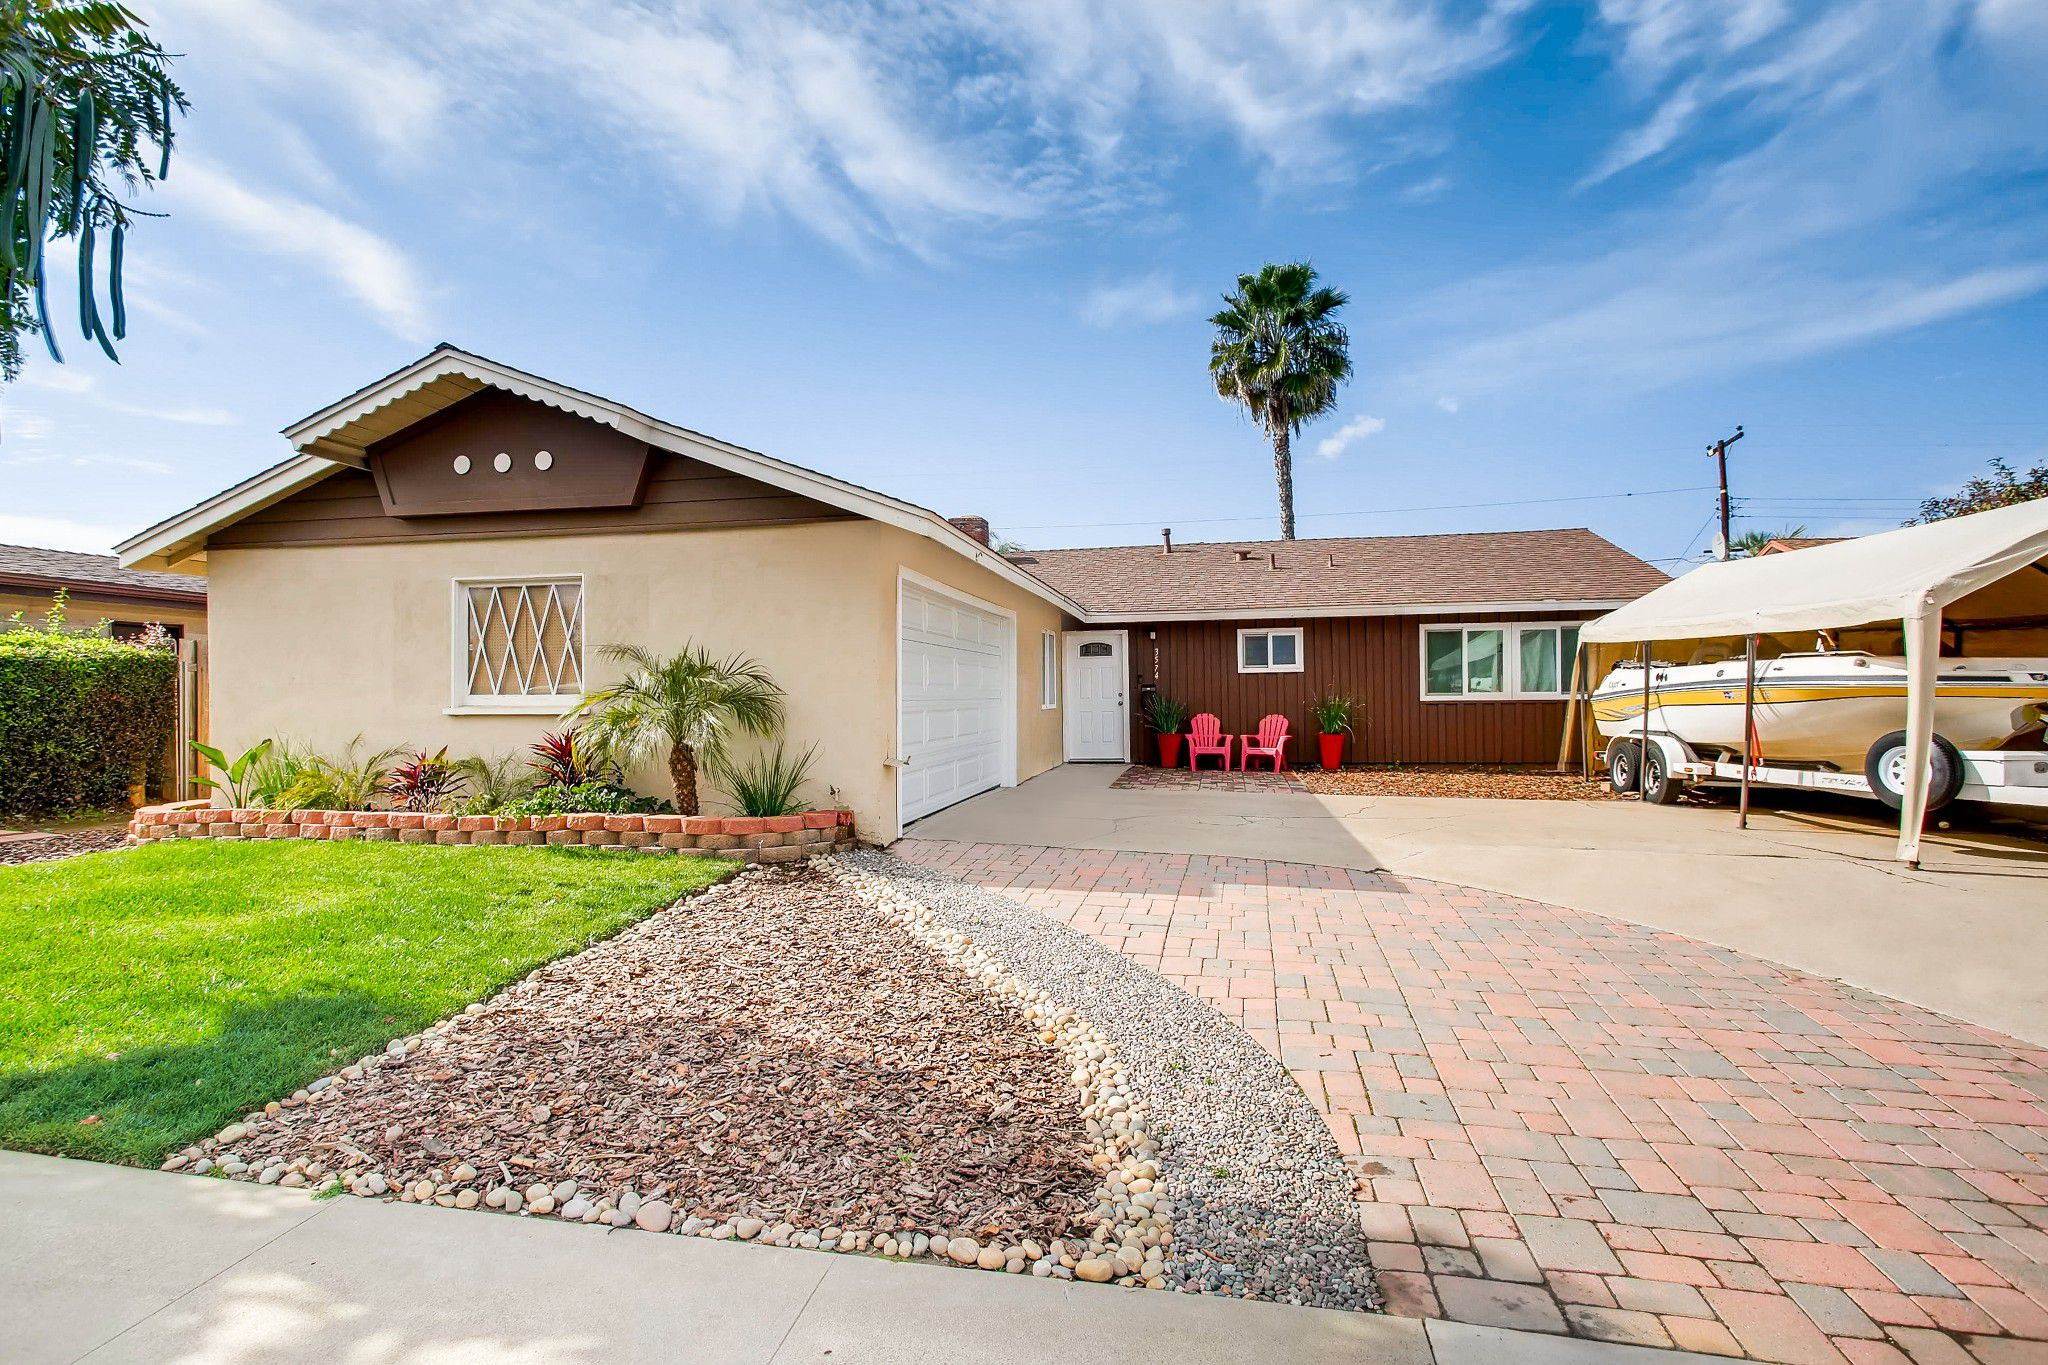 Main Photo: House for sale (San Diego)  : 4 bedrooms : 3574 Sandrock in Serra Mesa